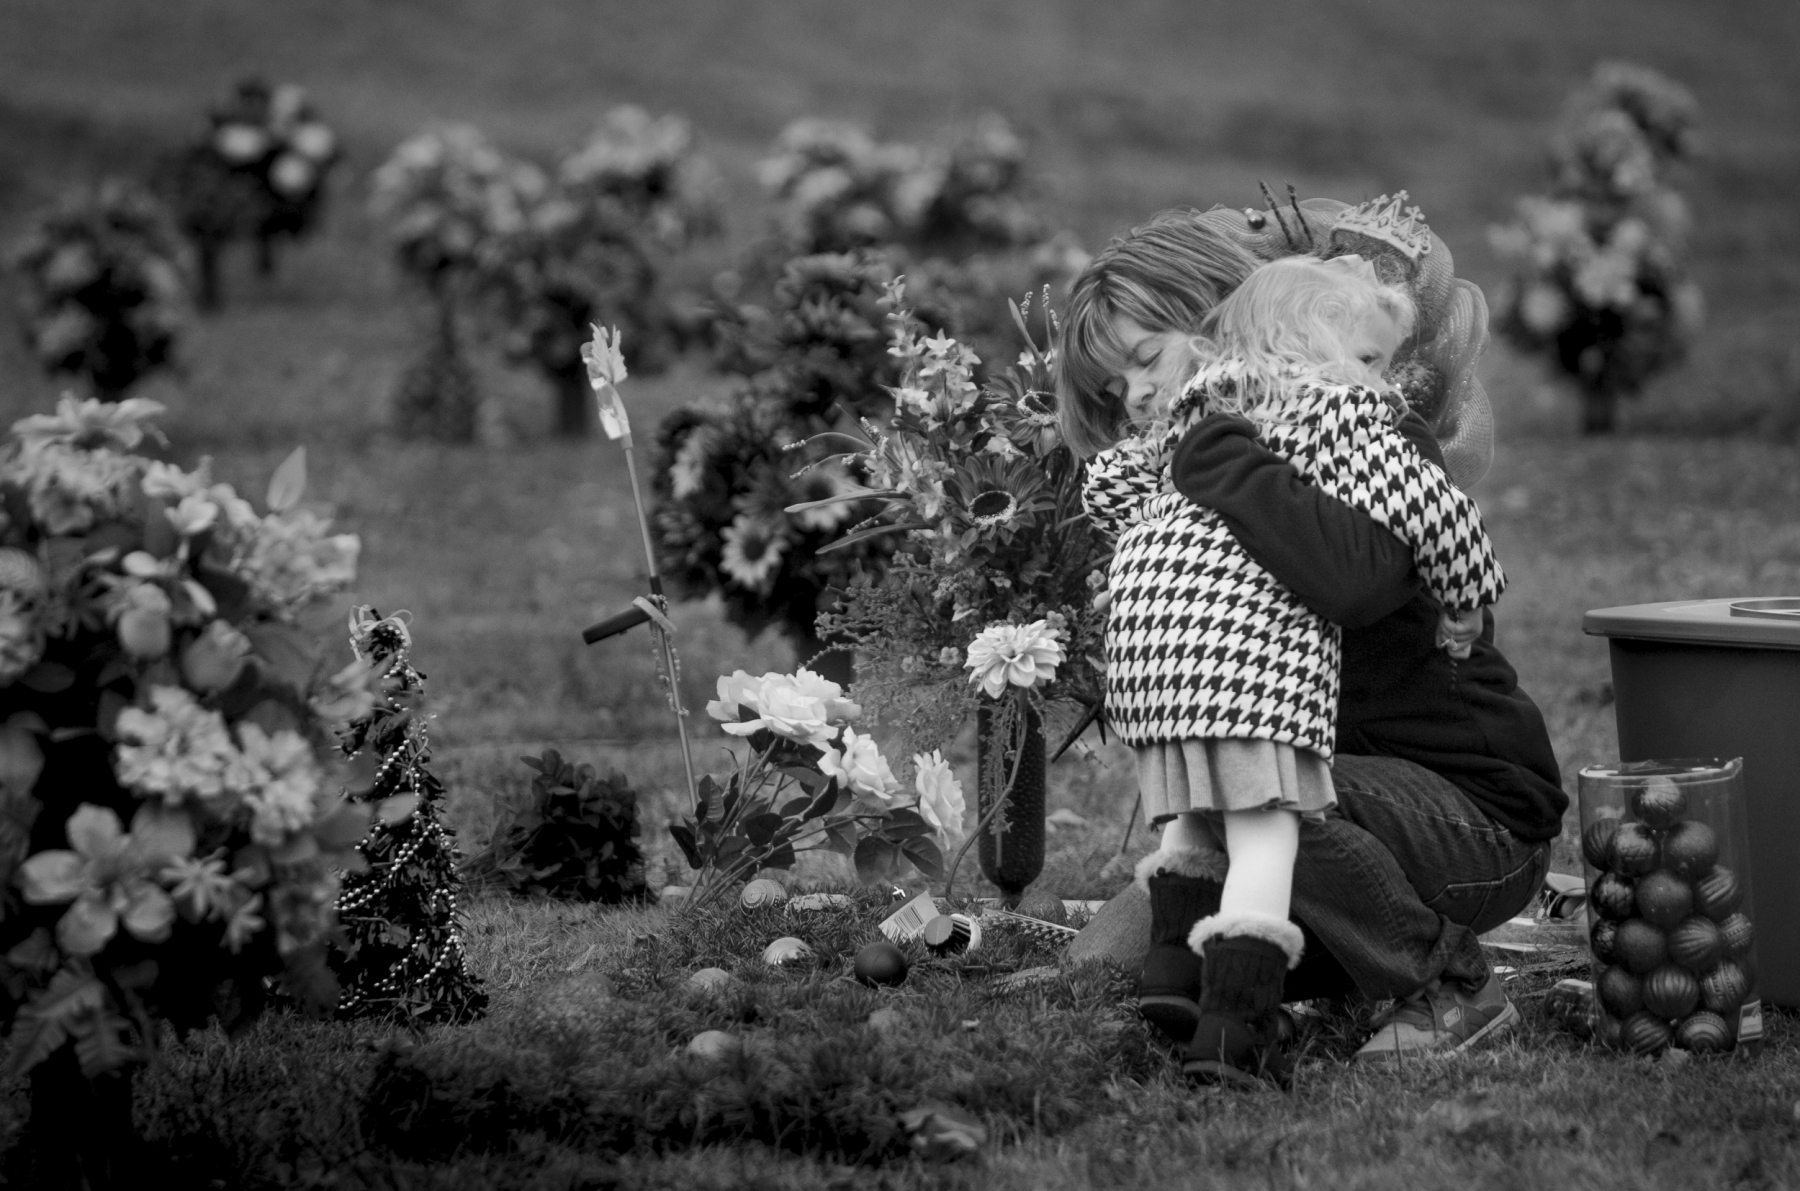 Melanie Hack, embraces her younger daughter Zoey, 3, near Reagan's grave at Monroe County Memorial Lawn in Tompkinsville, Kentucky. While other mothers' buy Christmas gifts for their children, Melanie buys ornaments and flowers to decorate her daughter's grave.